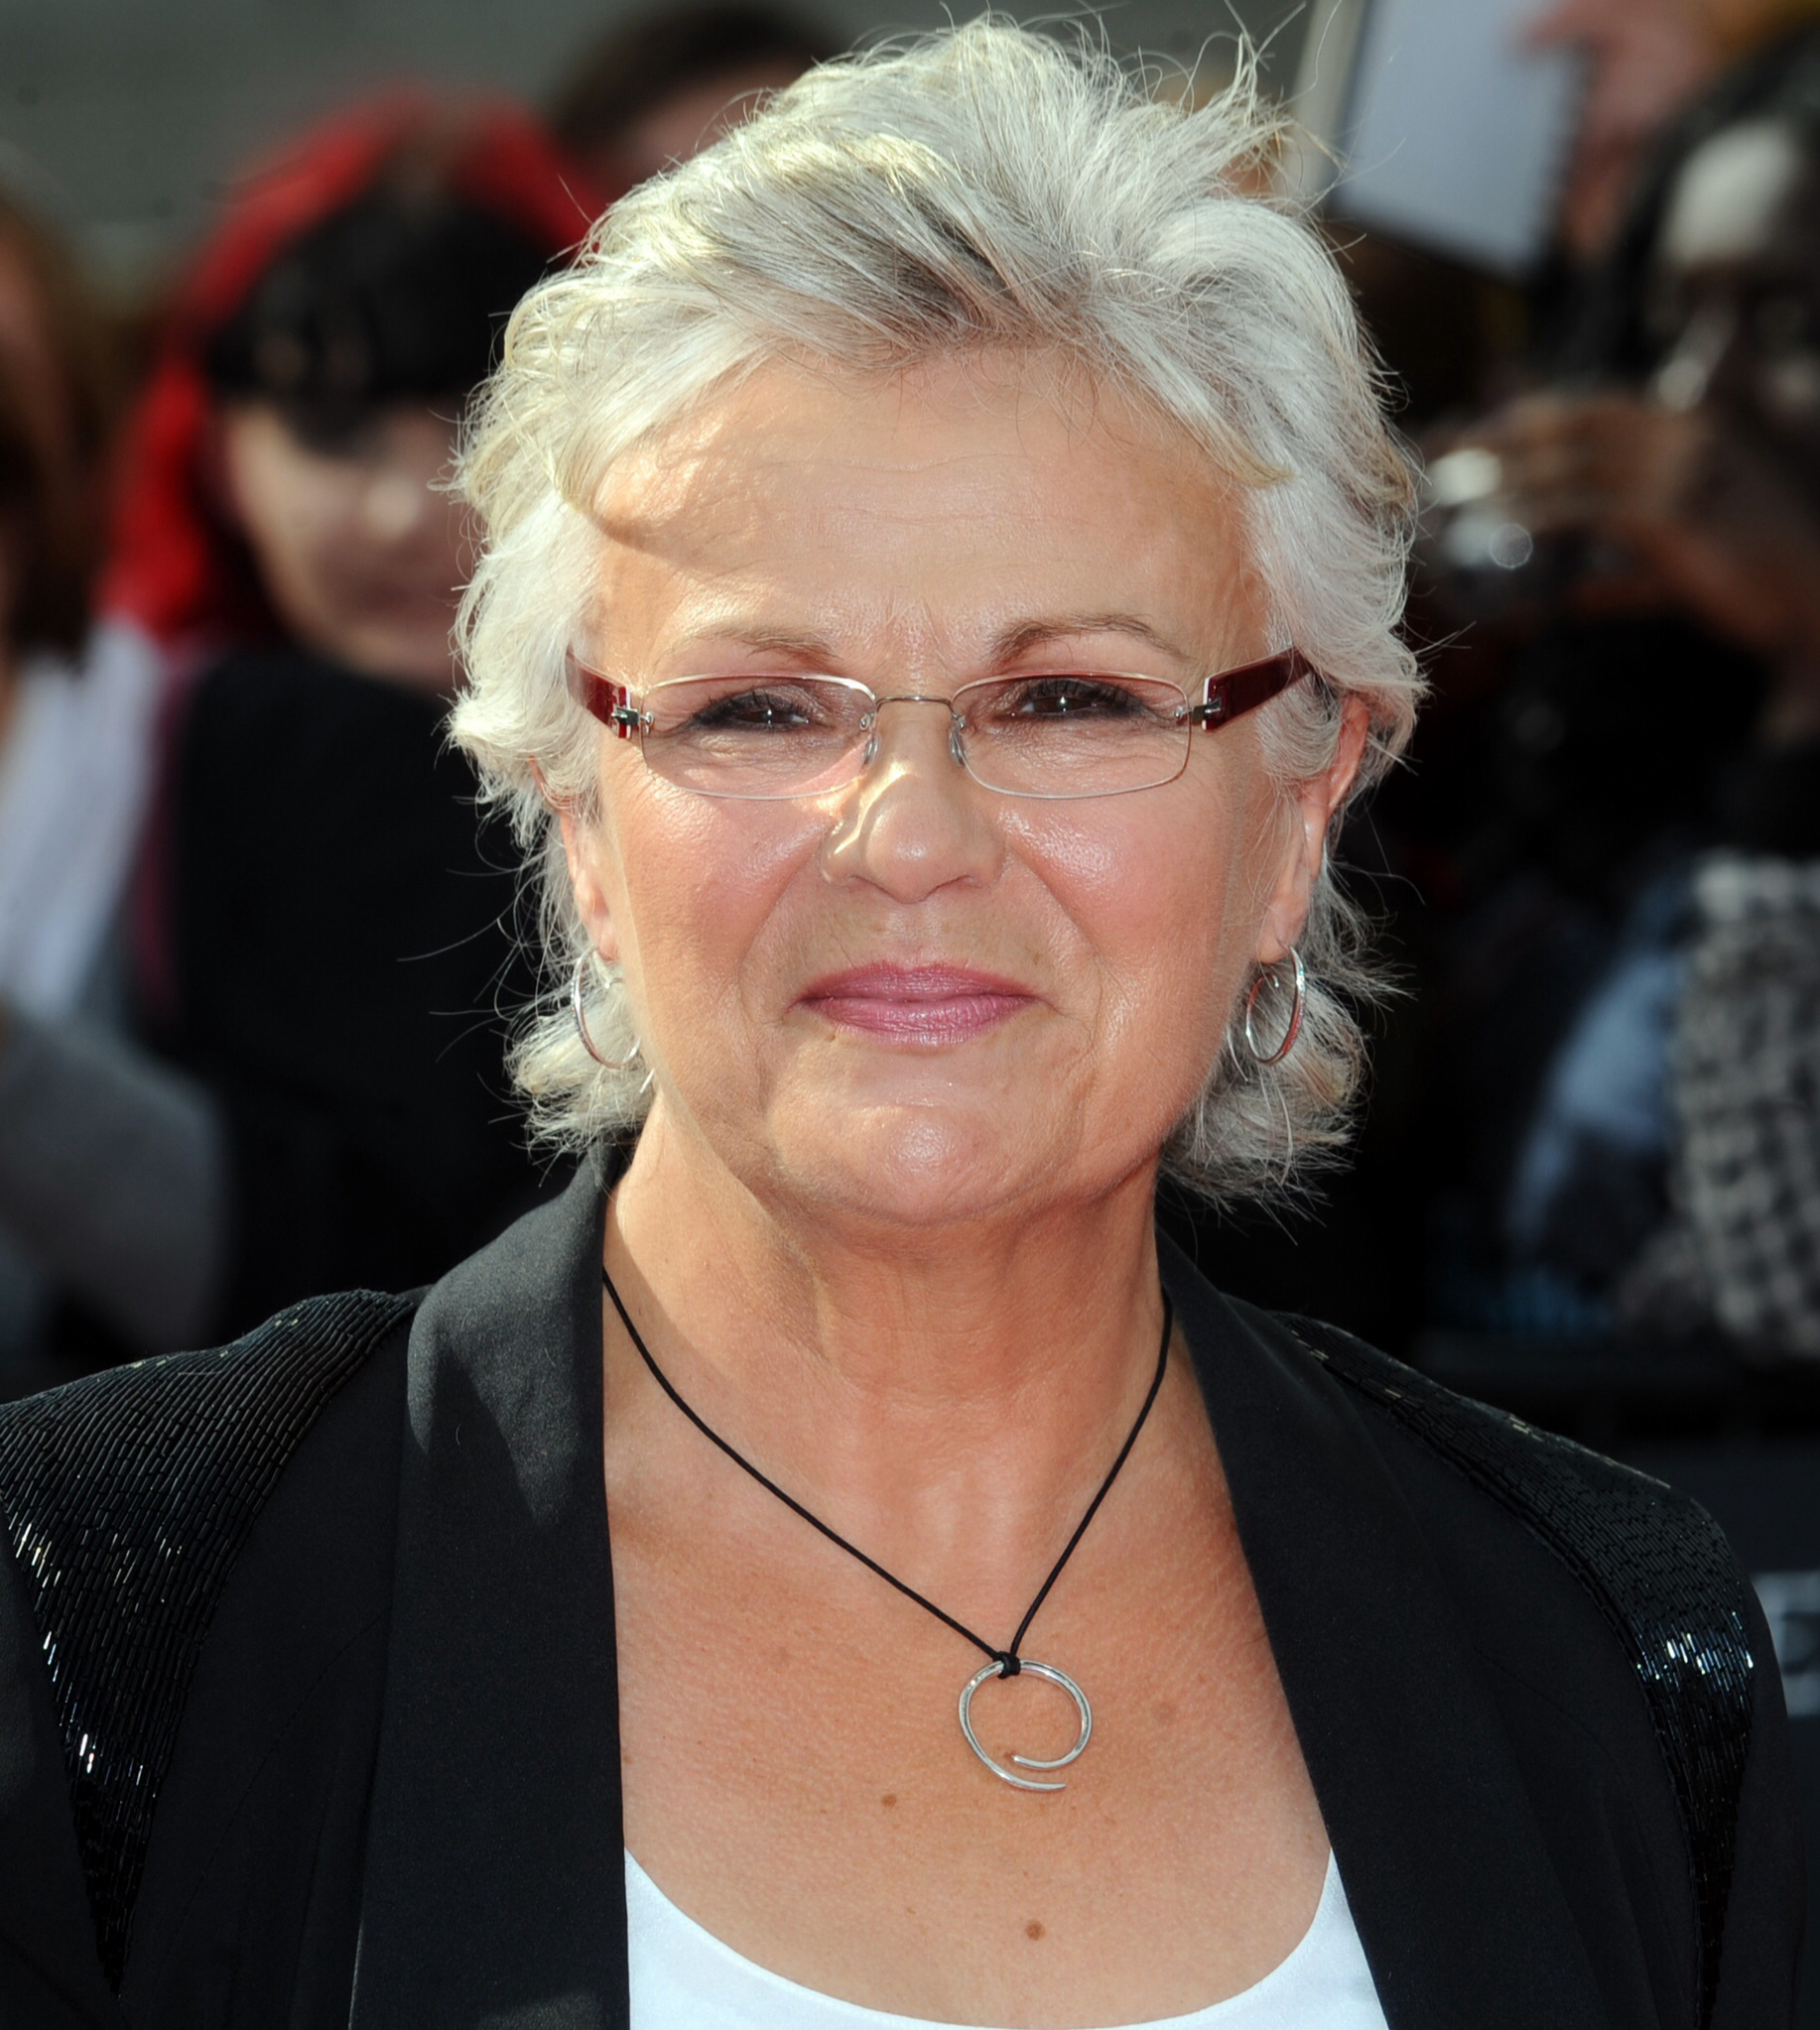 Julie Walters (born 1950) nude (51 foto and video), Topless, Leaked, Boobs, butt 2020